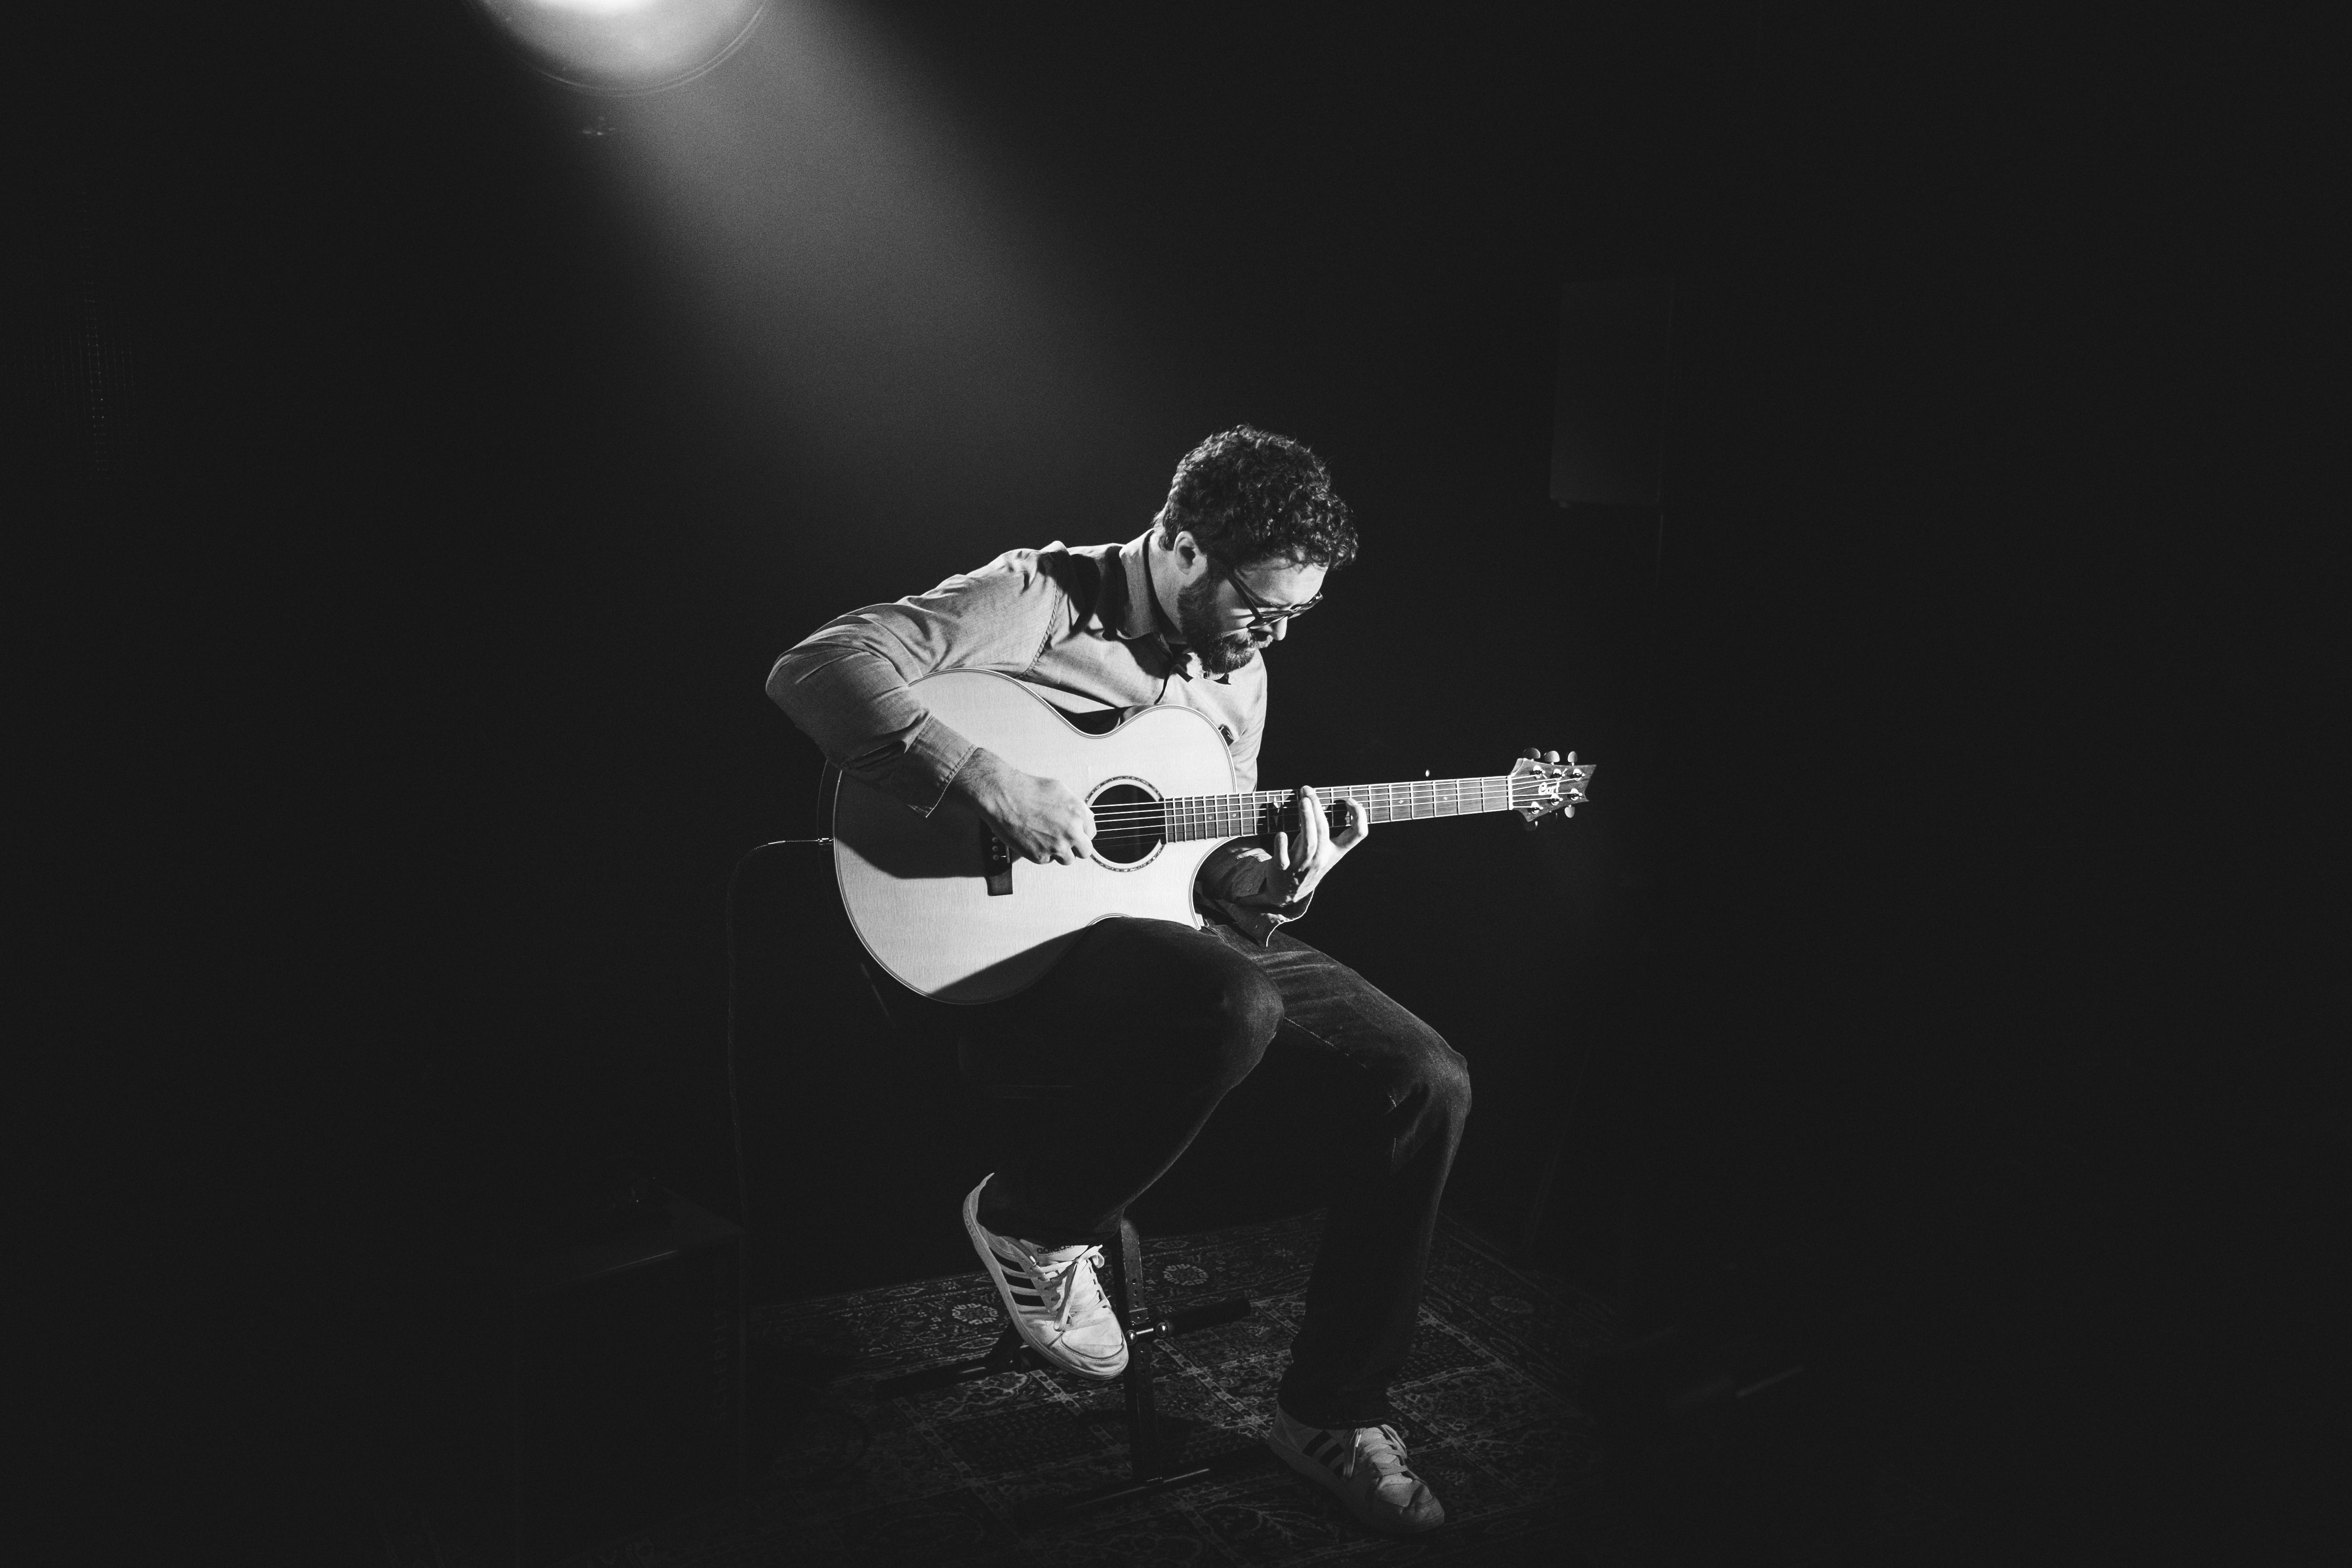 grayscale photo of man playing guitar on stage